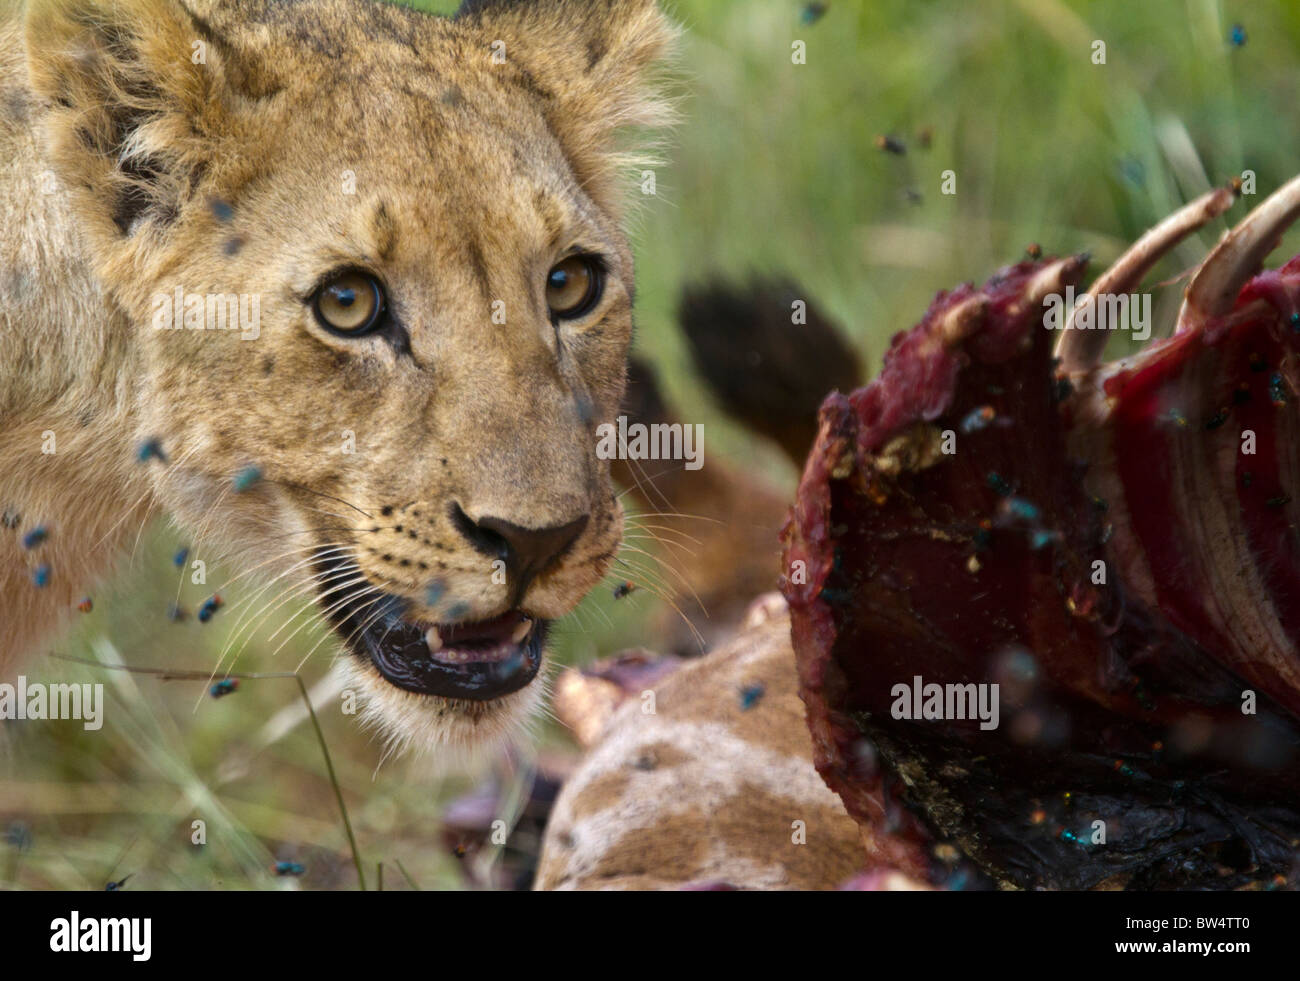 Young lion feeding on the decomposing carcass of a giraffe, surrounded by flies - Stock Image